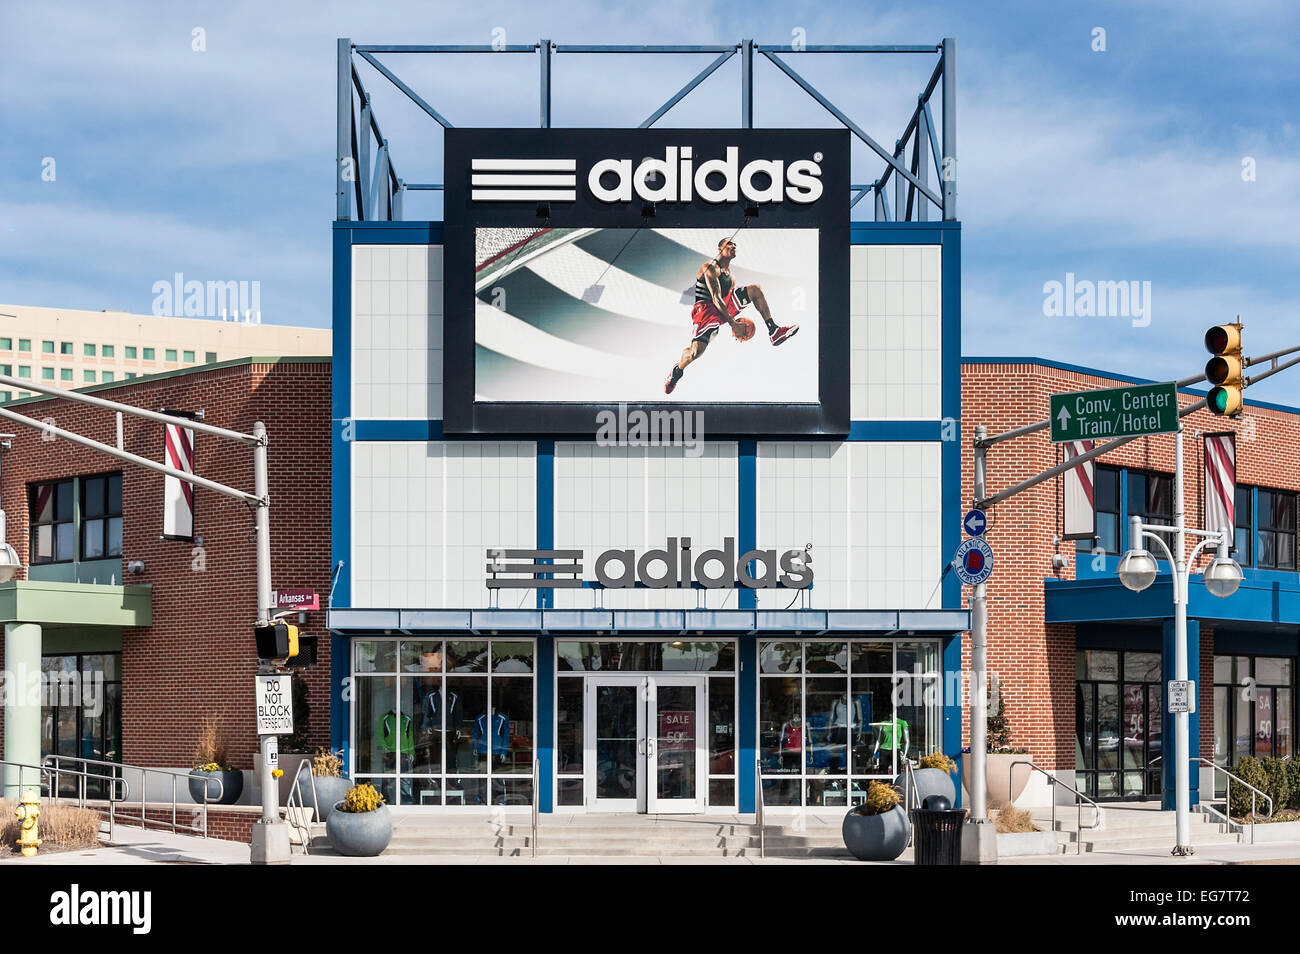 Adidas Factory store outlet, Atlantic City, New Jersey, USA - Stock Image